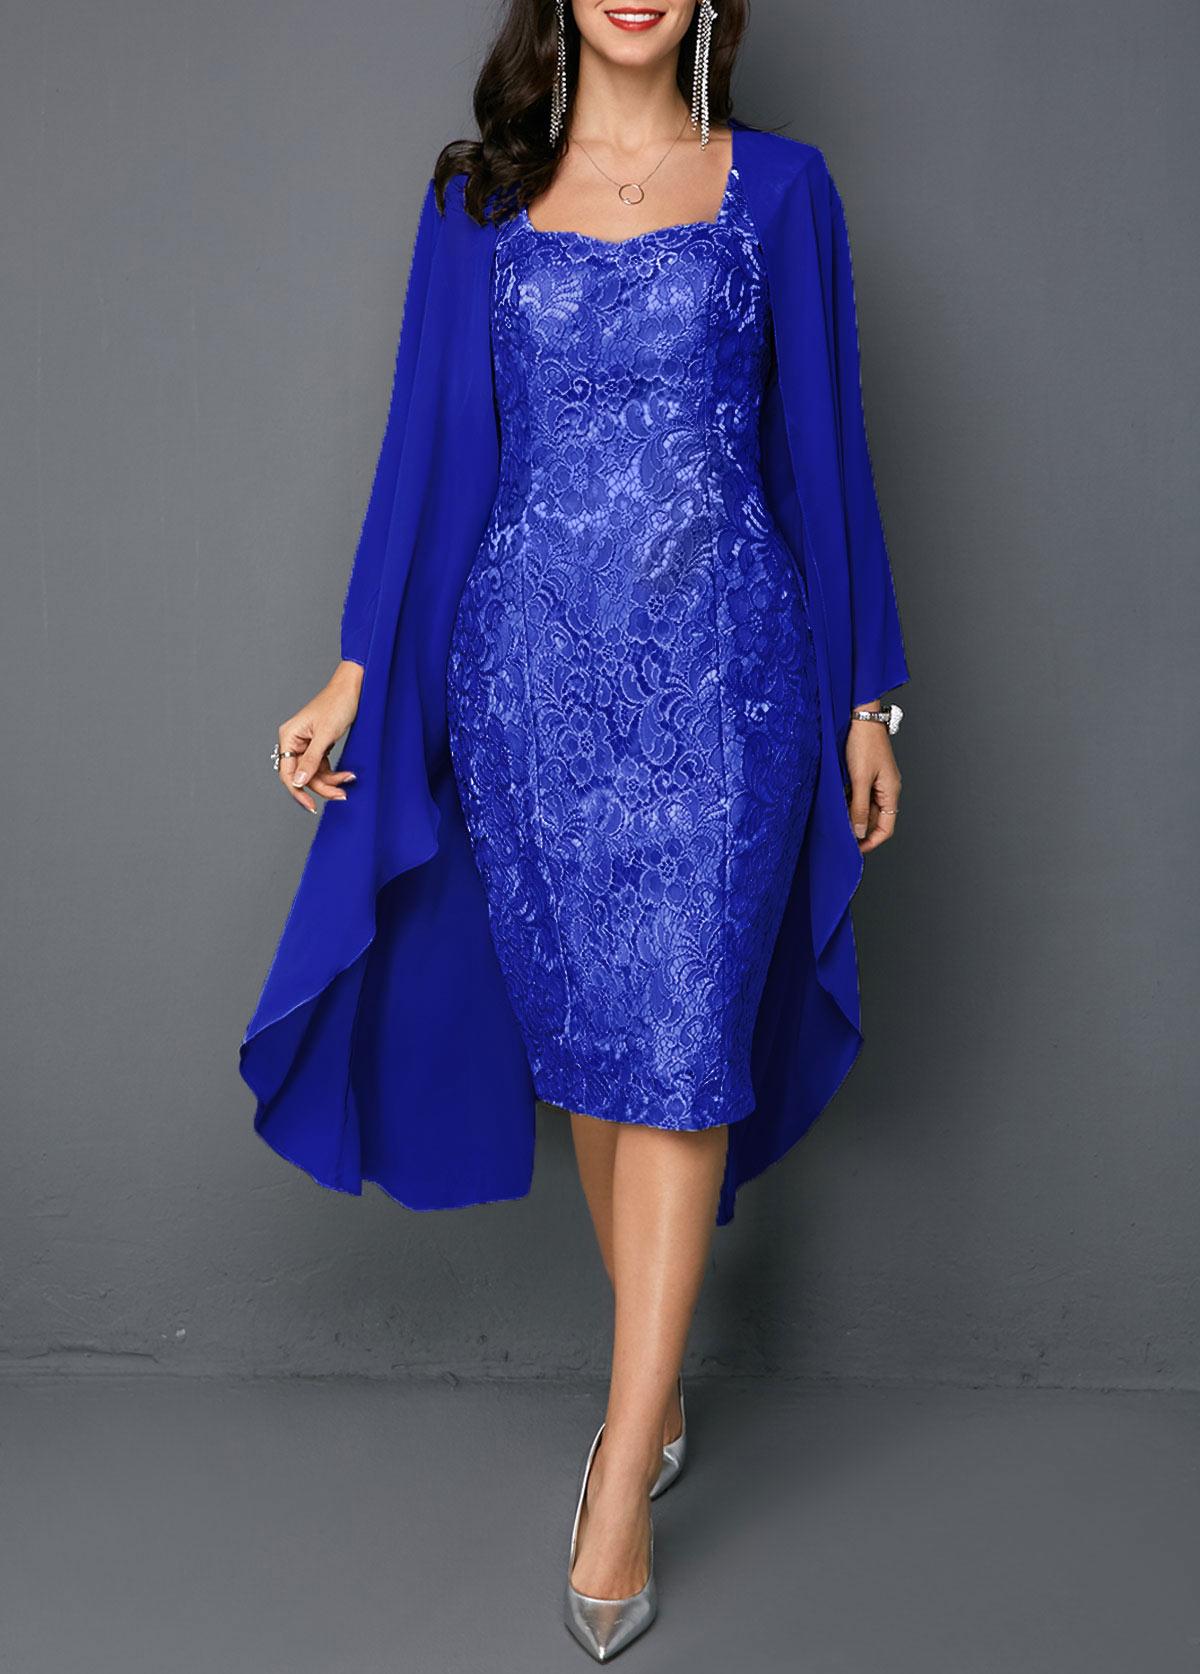 ROTITA Open Front Top and Lace Sheath Dress